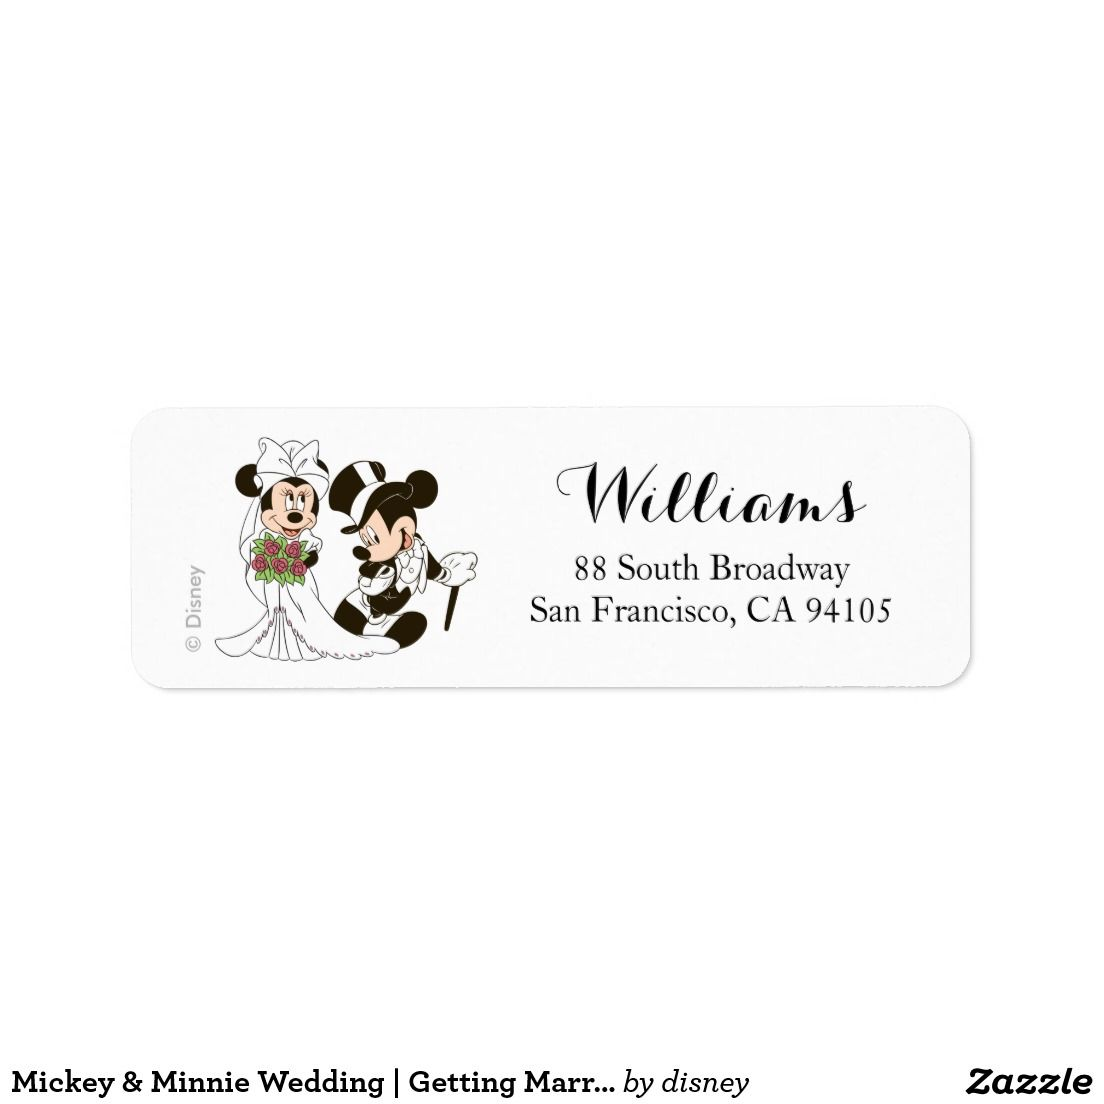 Mickey Minnie Wedding Getting Married Disney Gifts Weddings Housewarming